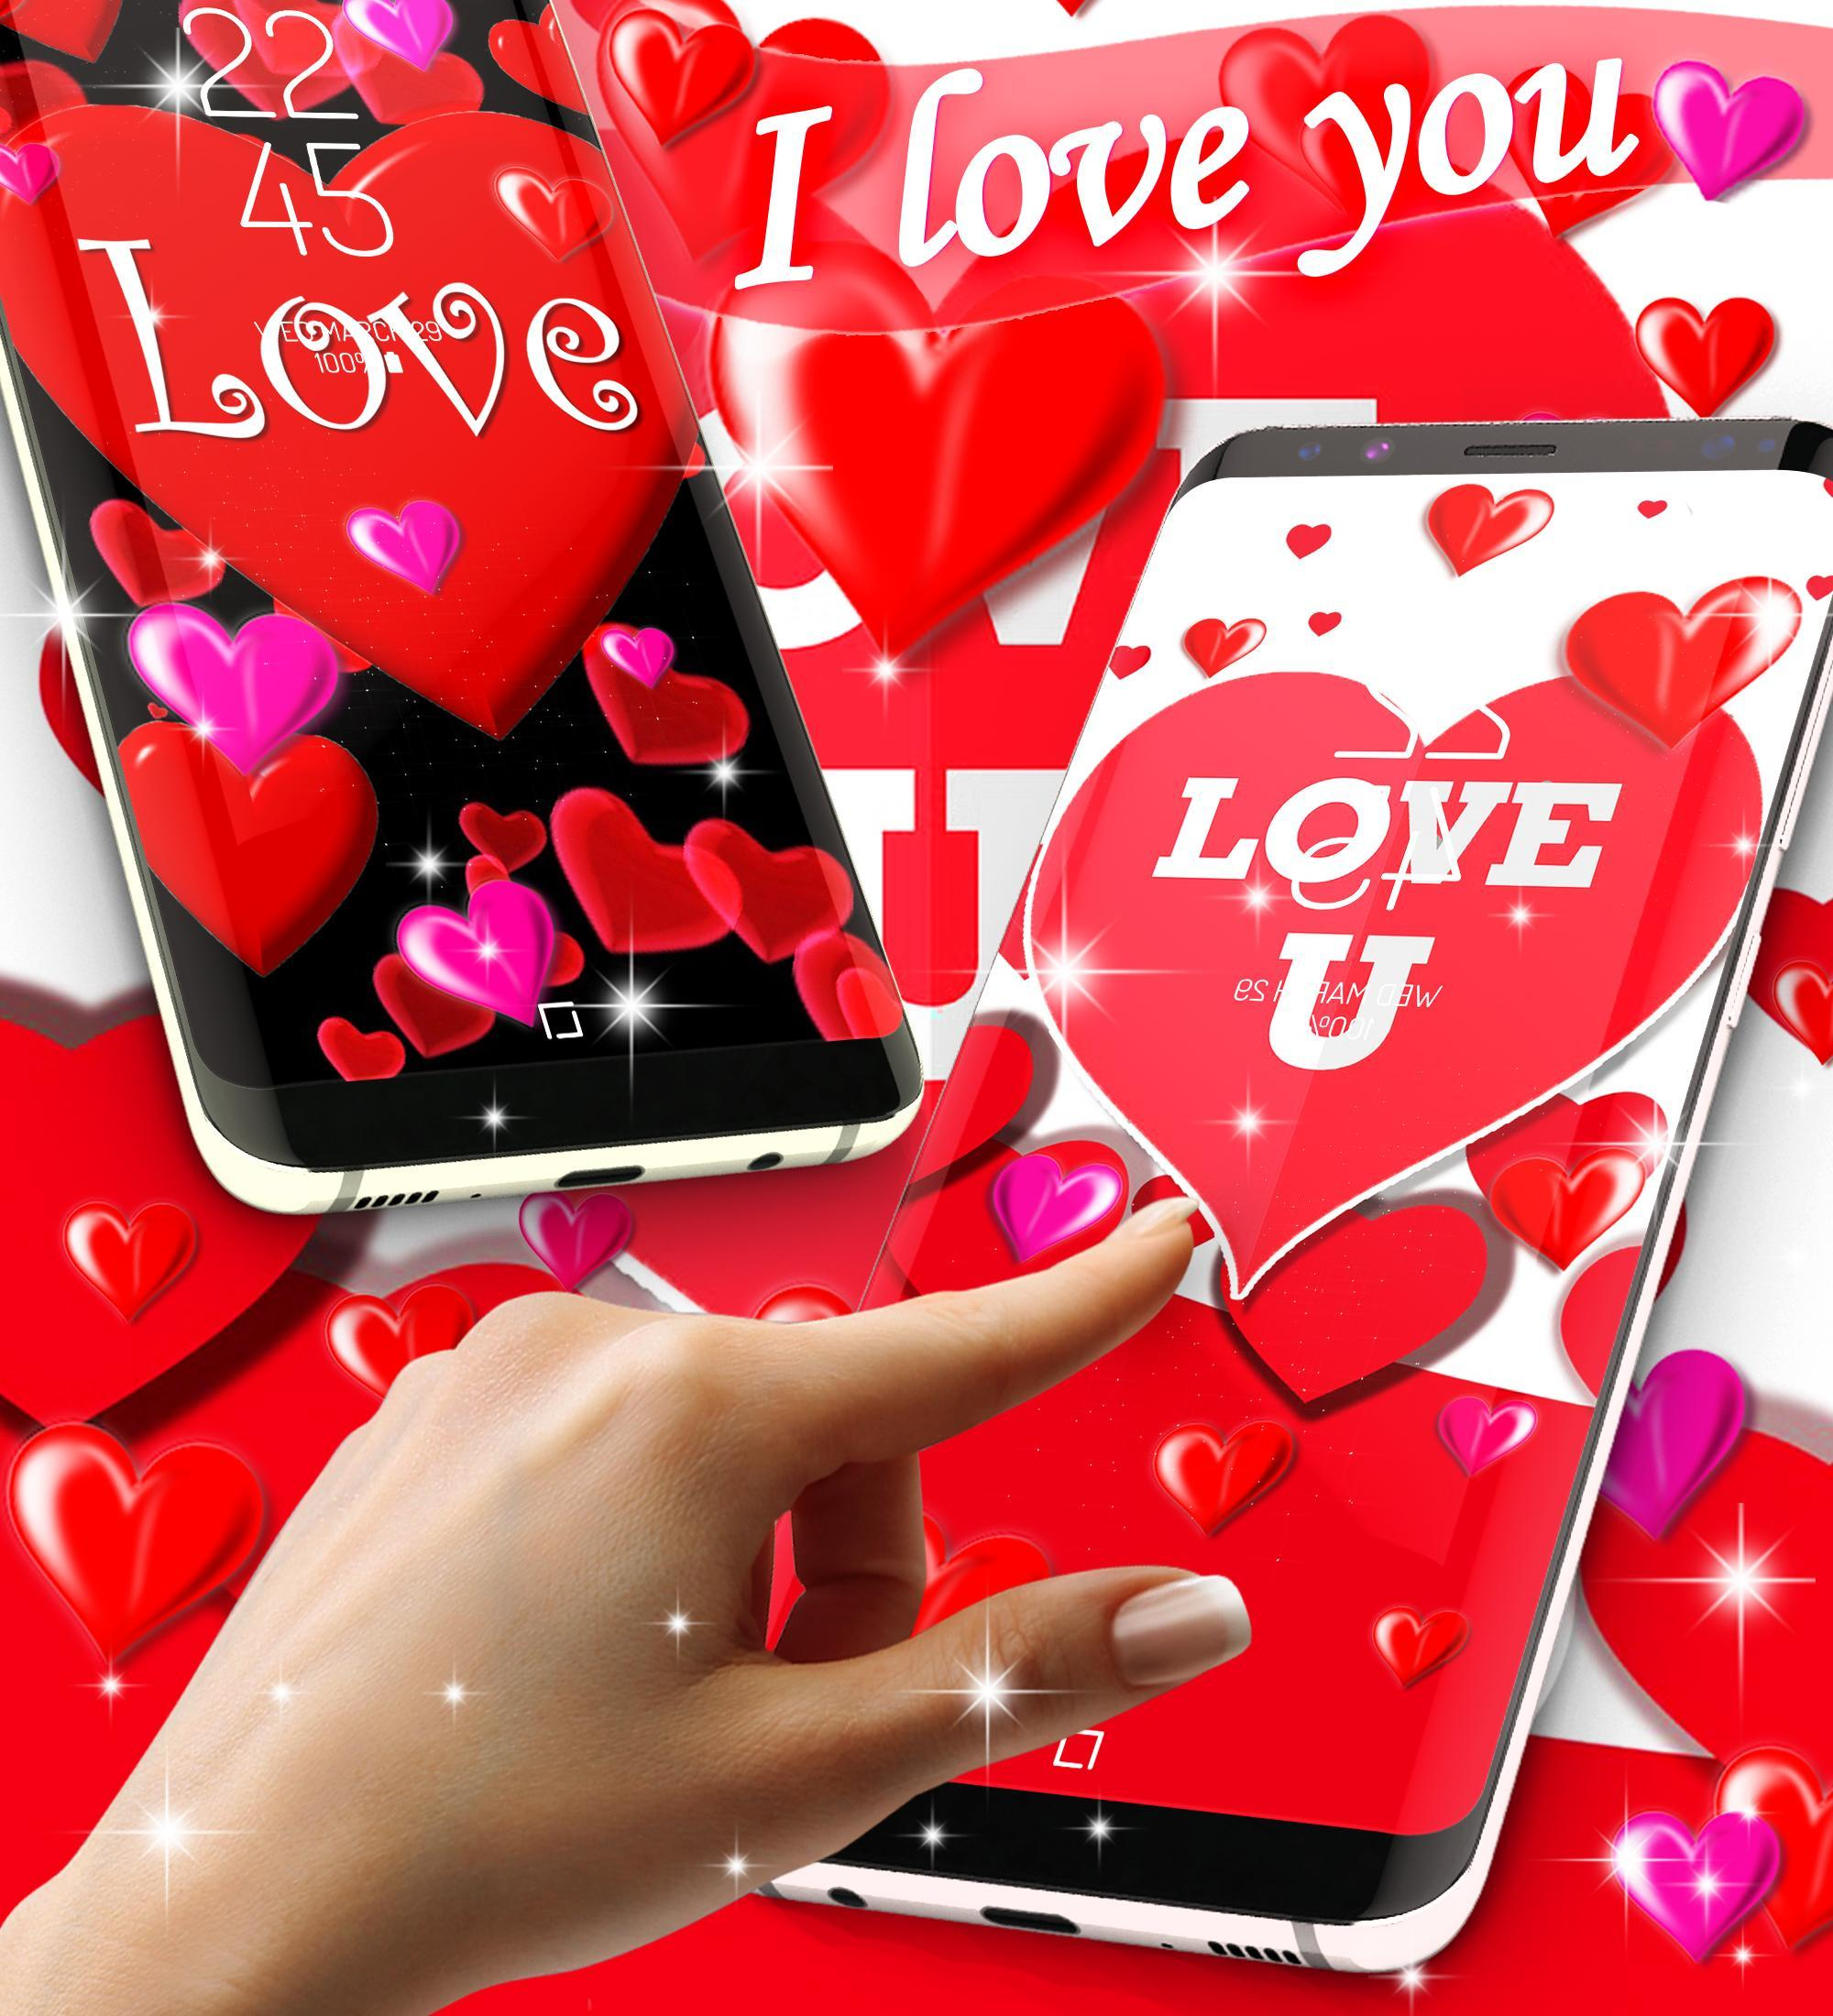 I Love You Live Wallpaper For Android Apk Download